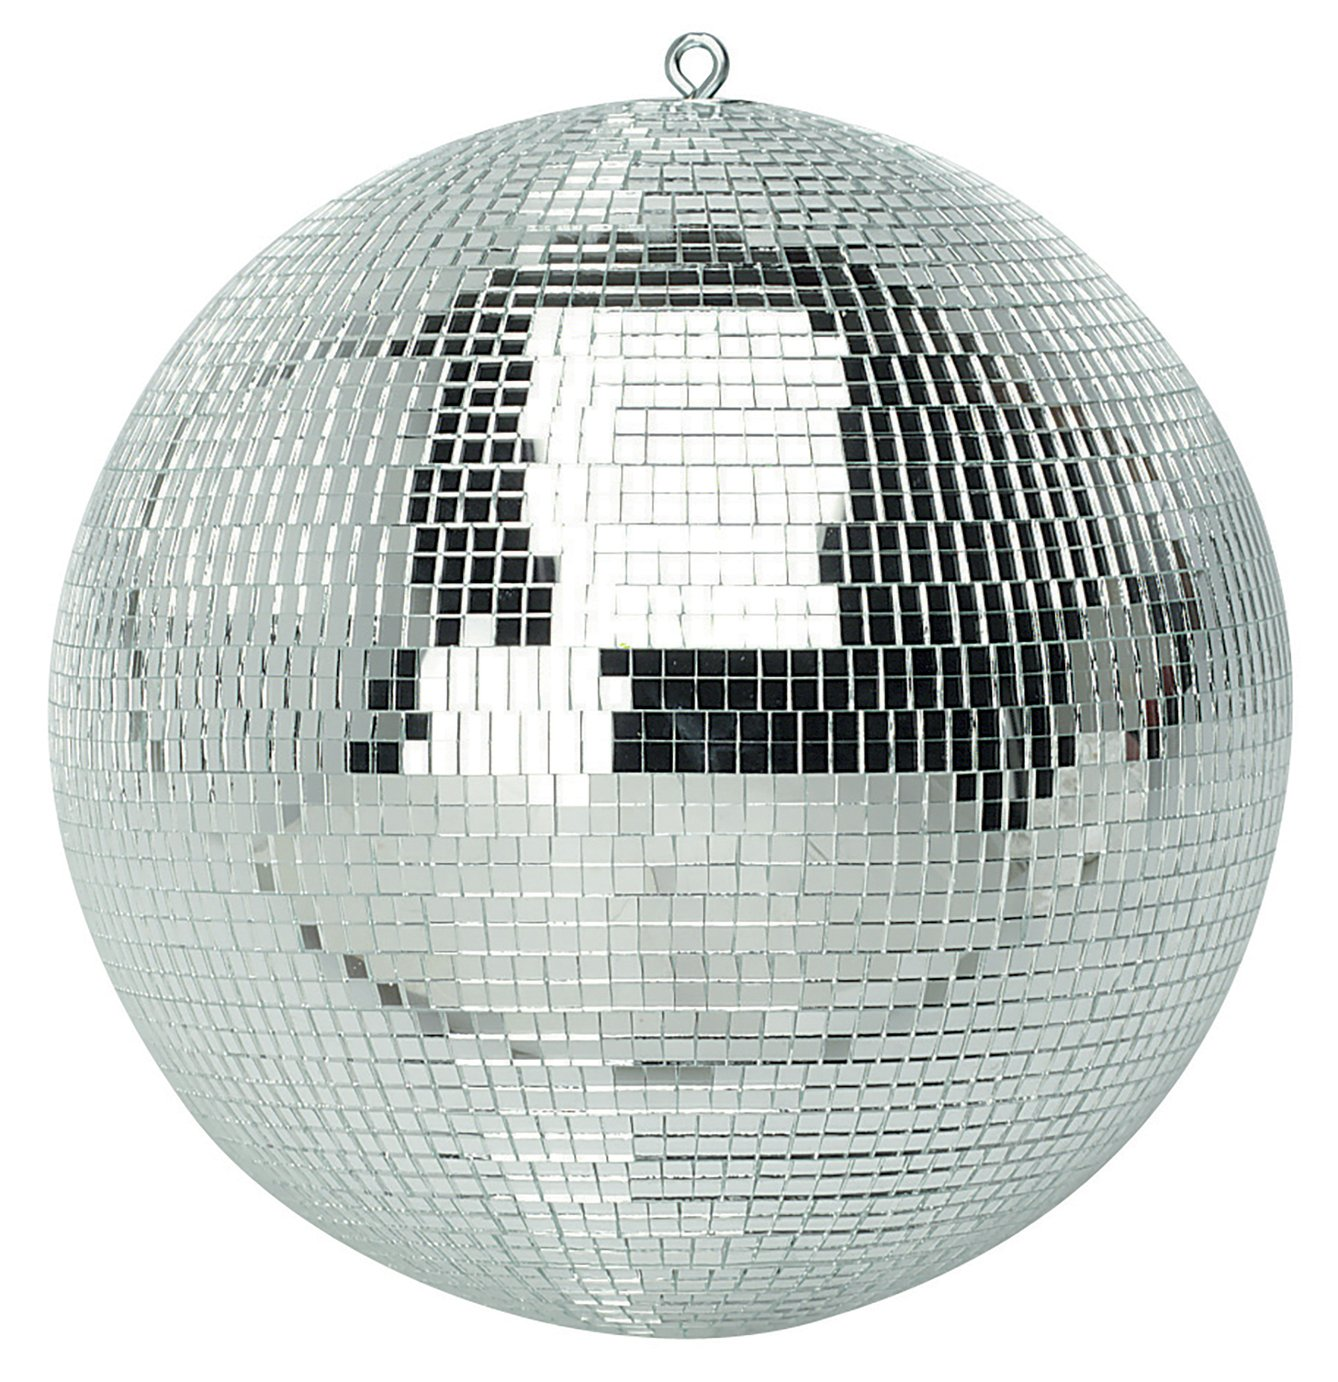 Image of FXLab Silver 12 Inch Mirror Ball.